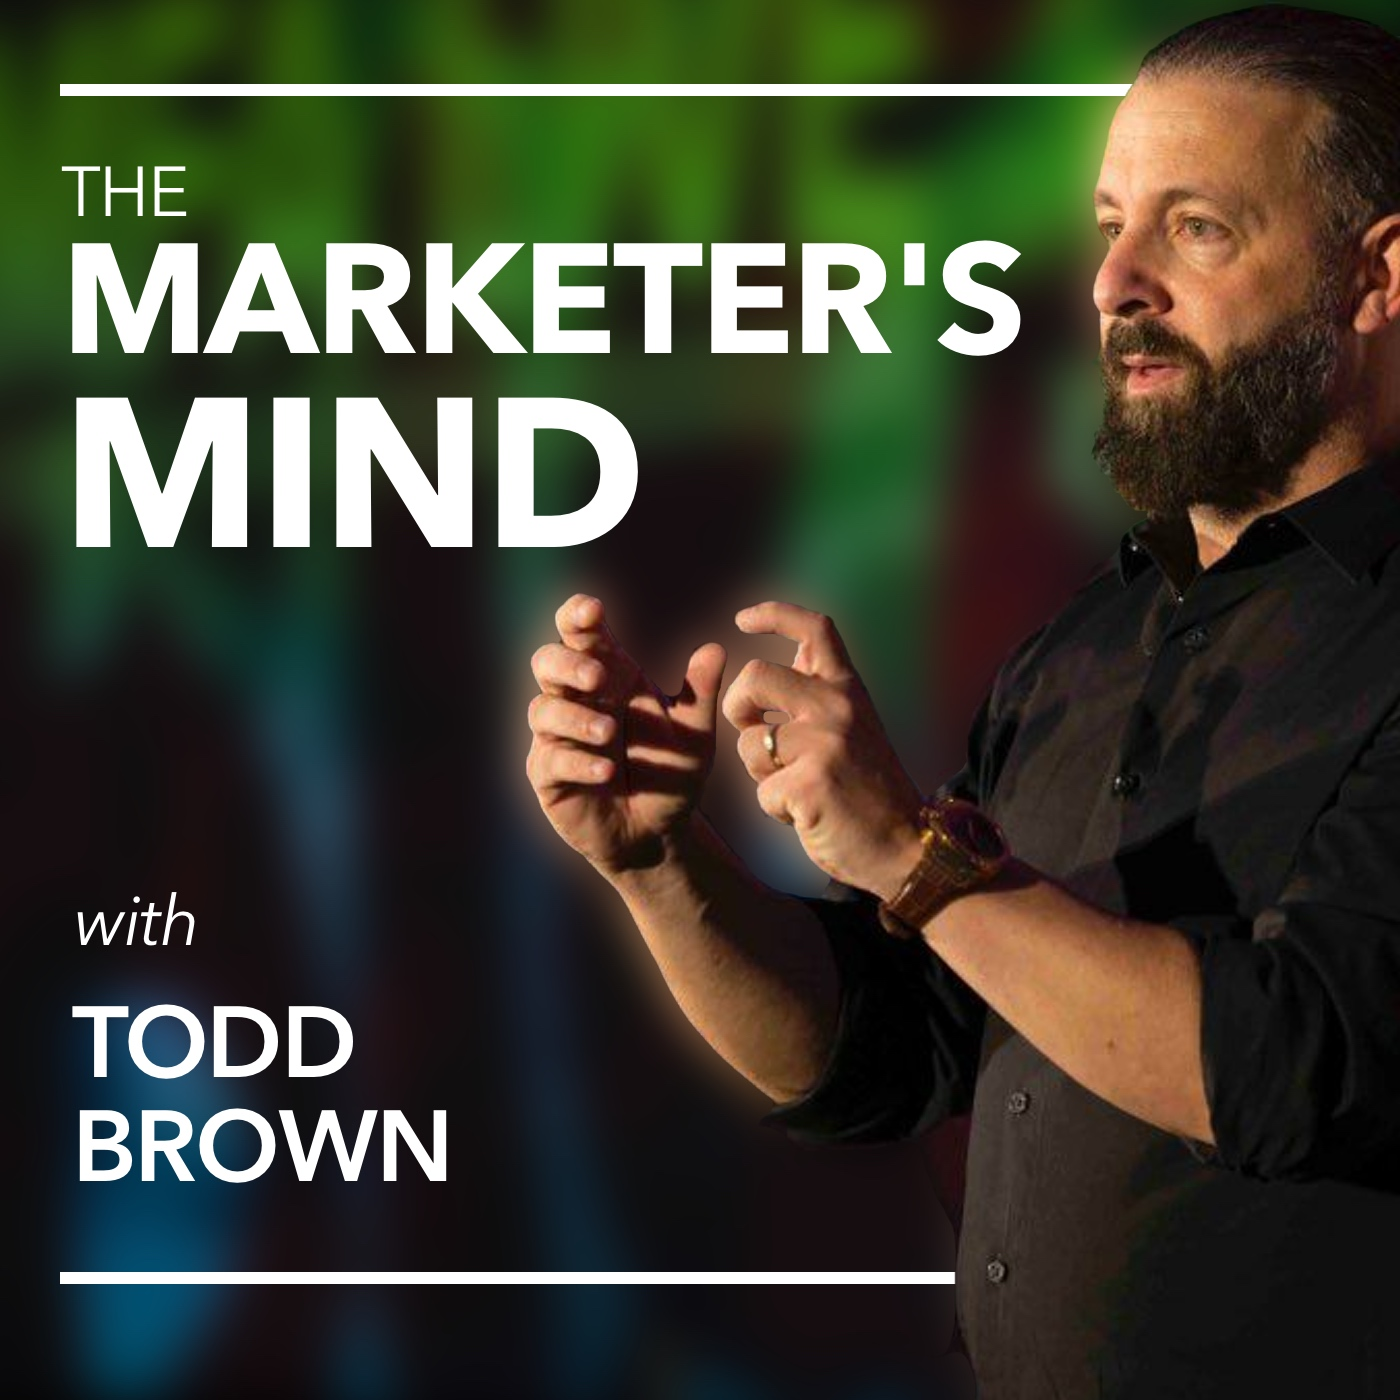 The Marketer's Mind with Todd Brown • Marketing Topics That Push the Boundaries